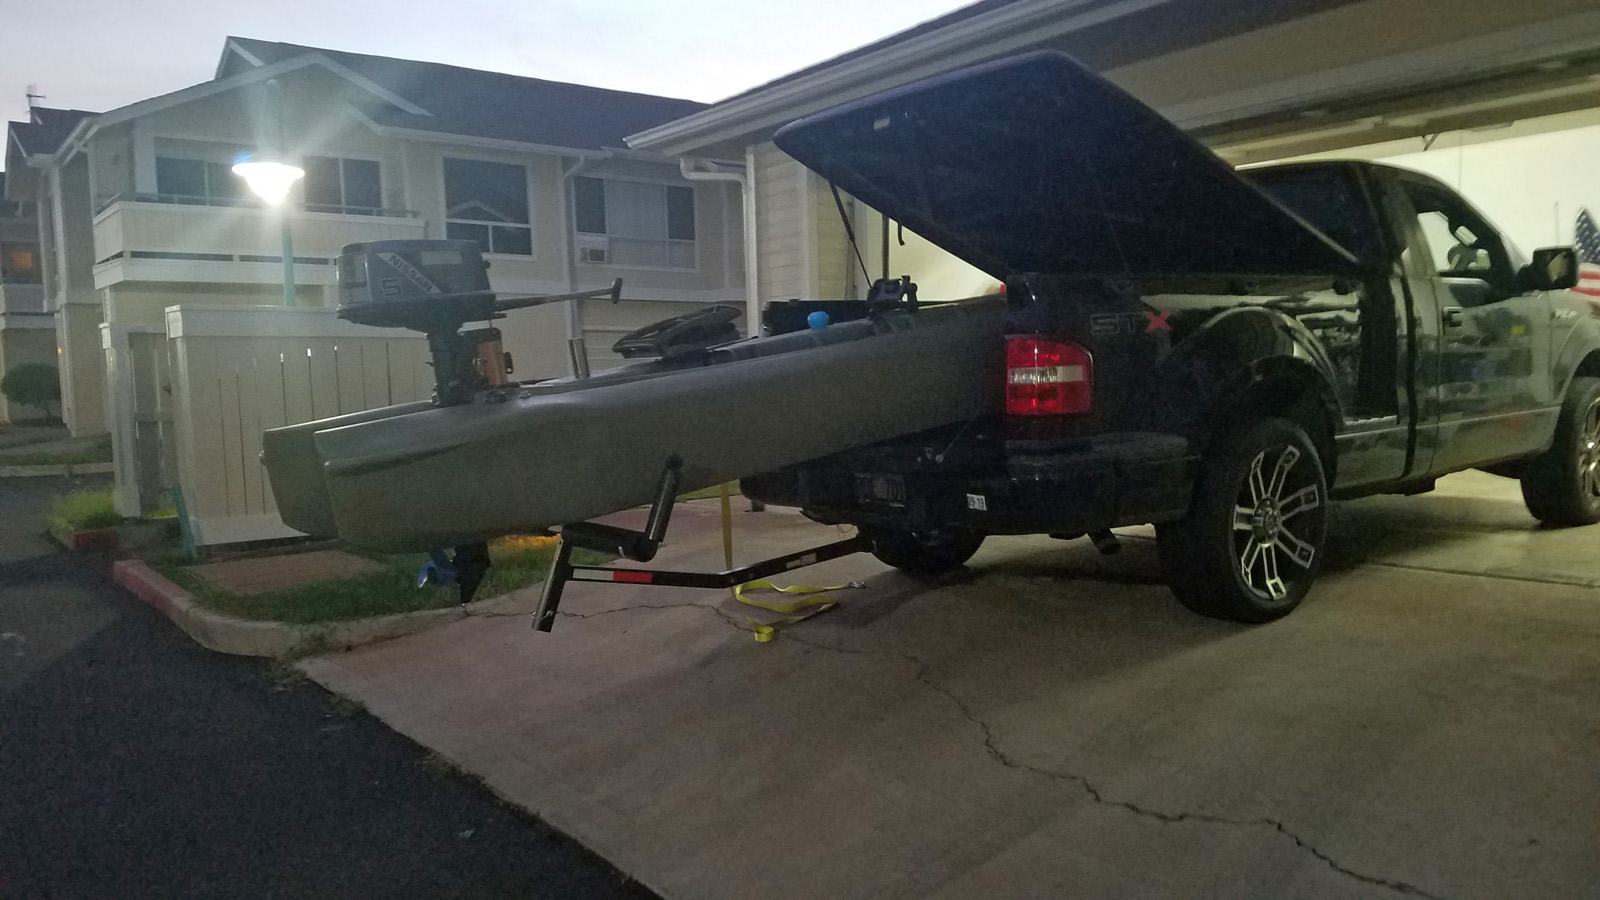 S4 offshore skiff transported on pickup truck bed, Hawaii